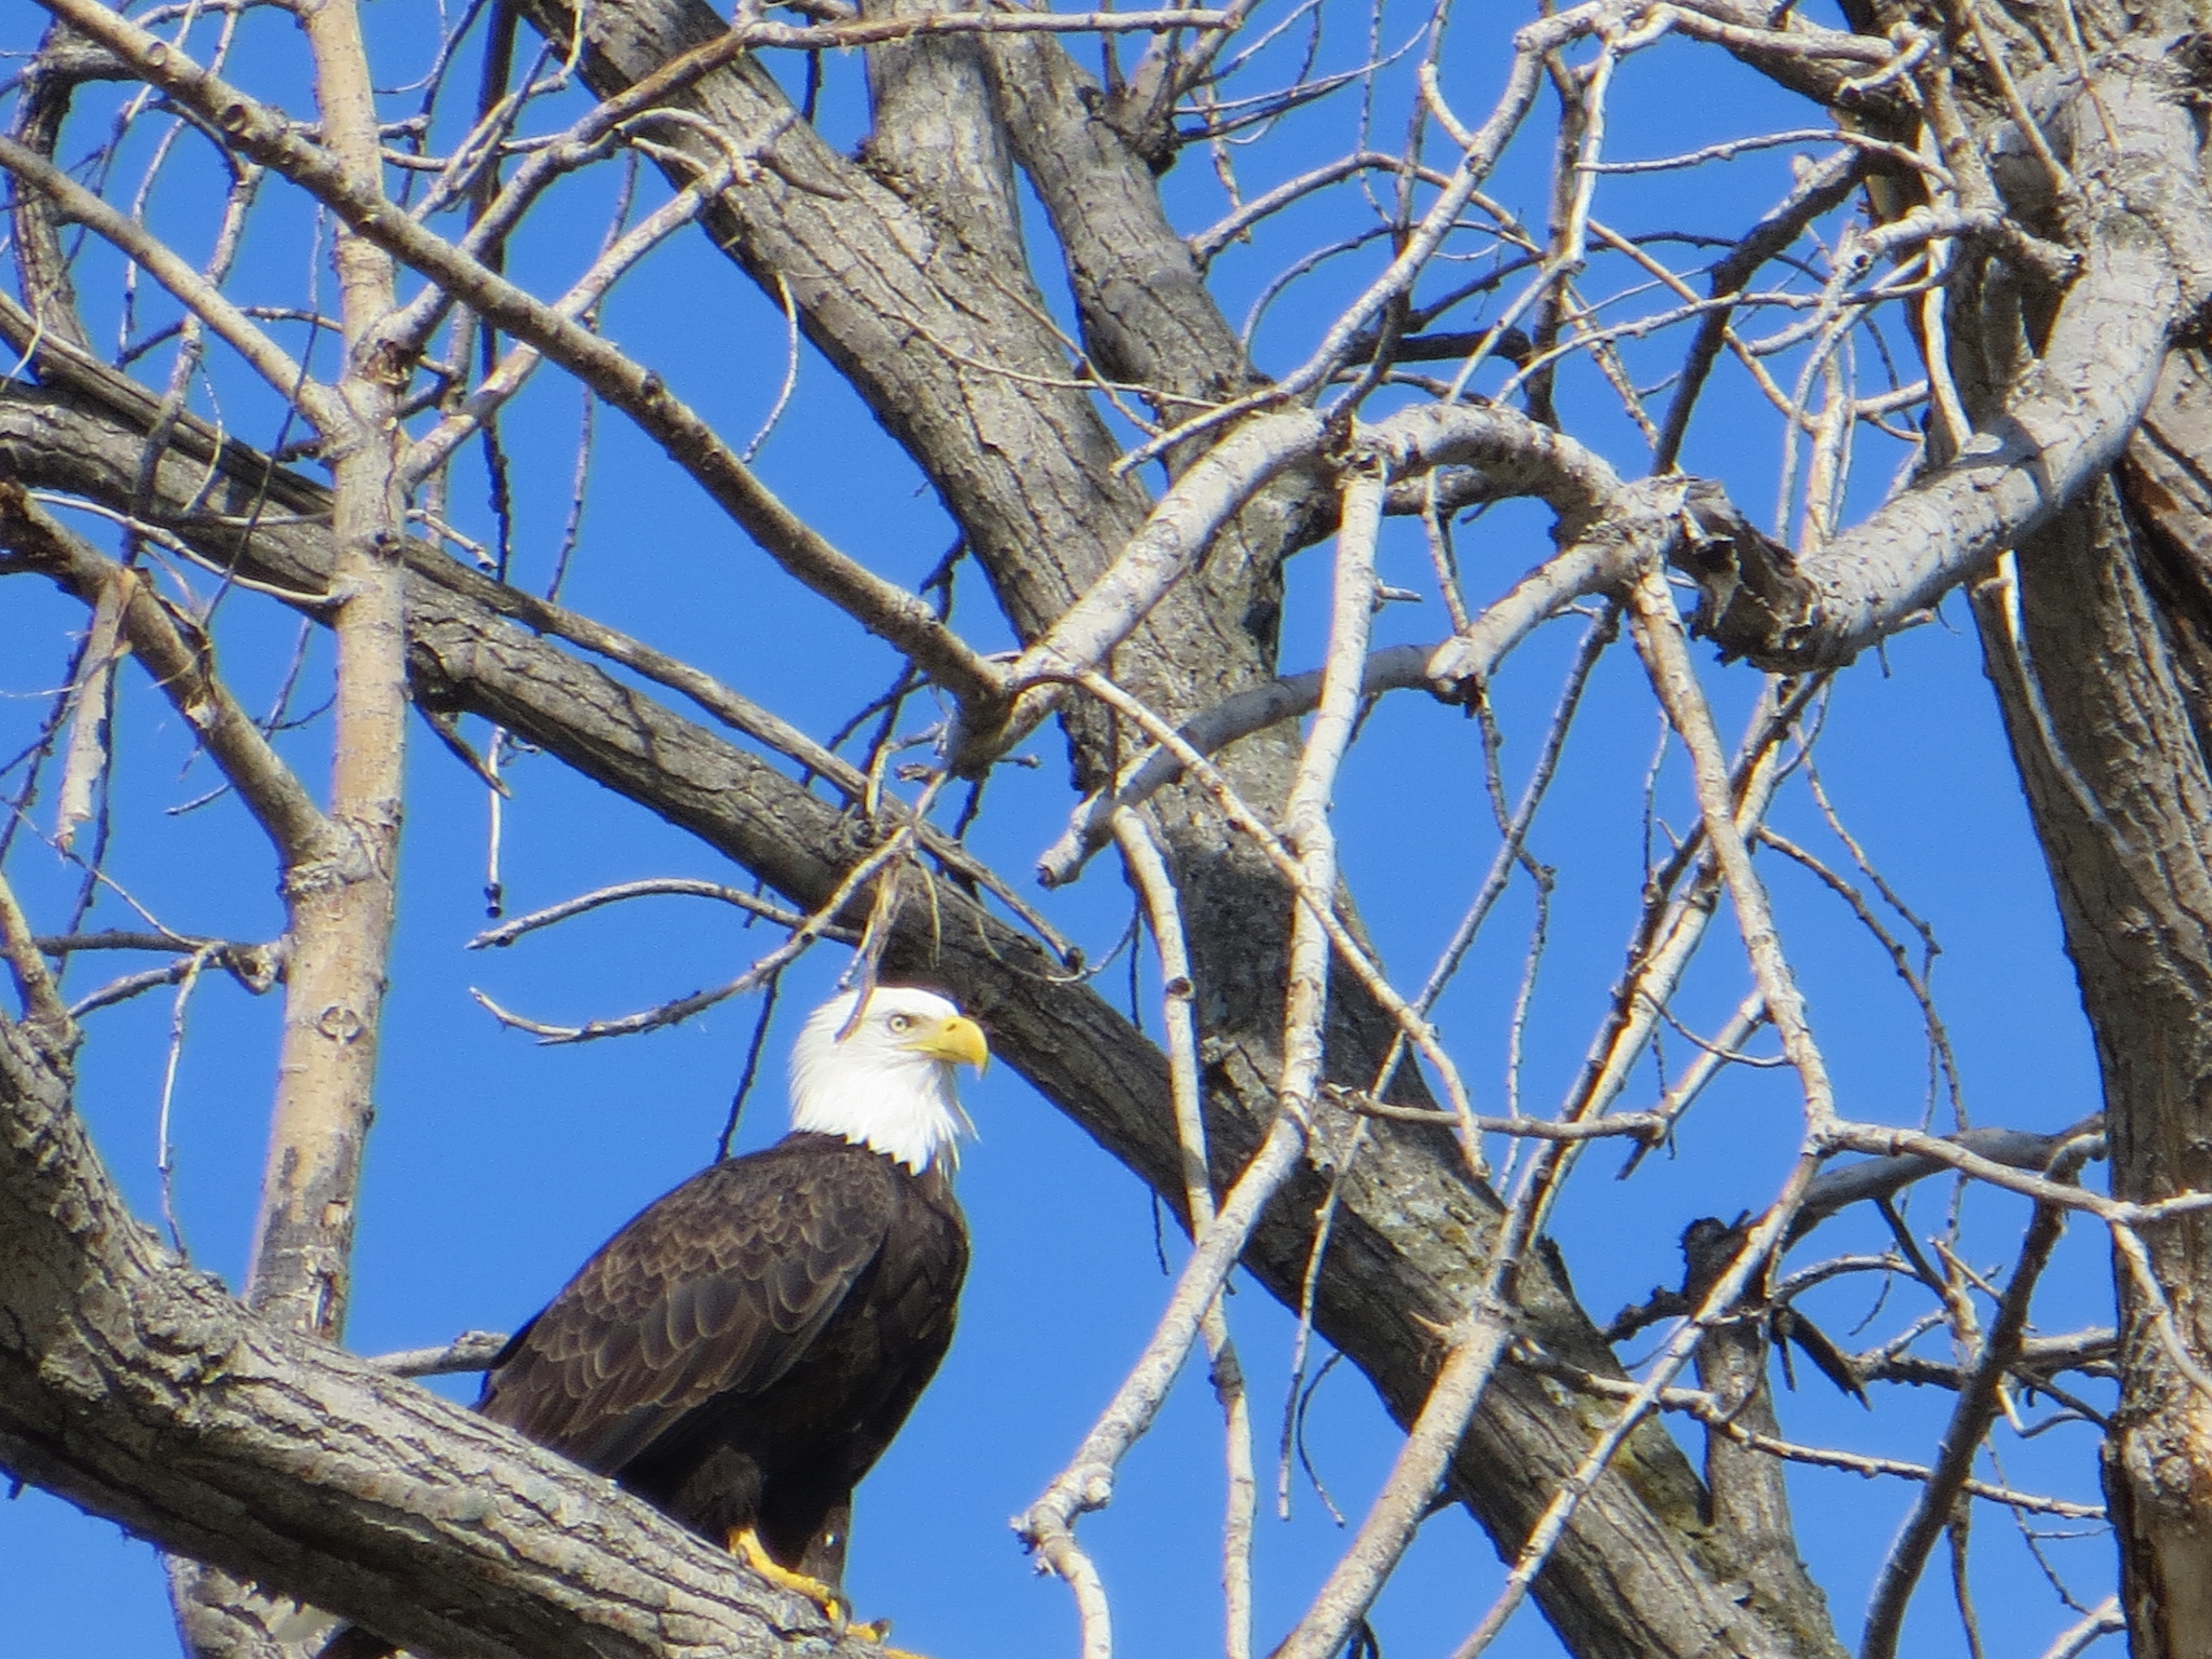 The stoic bald eagle